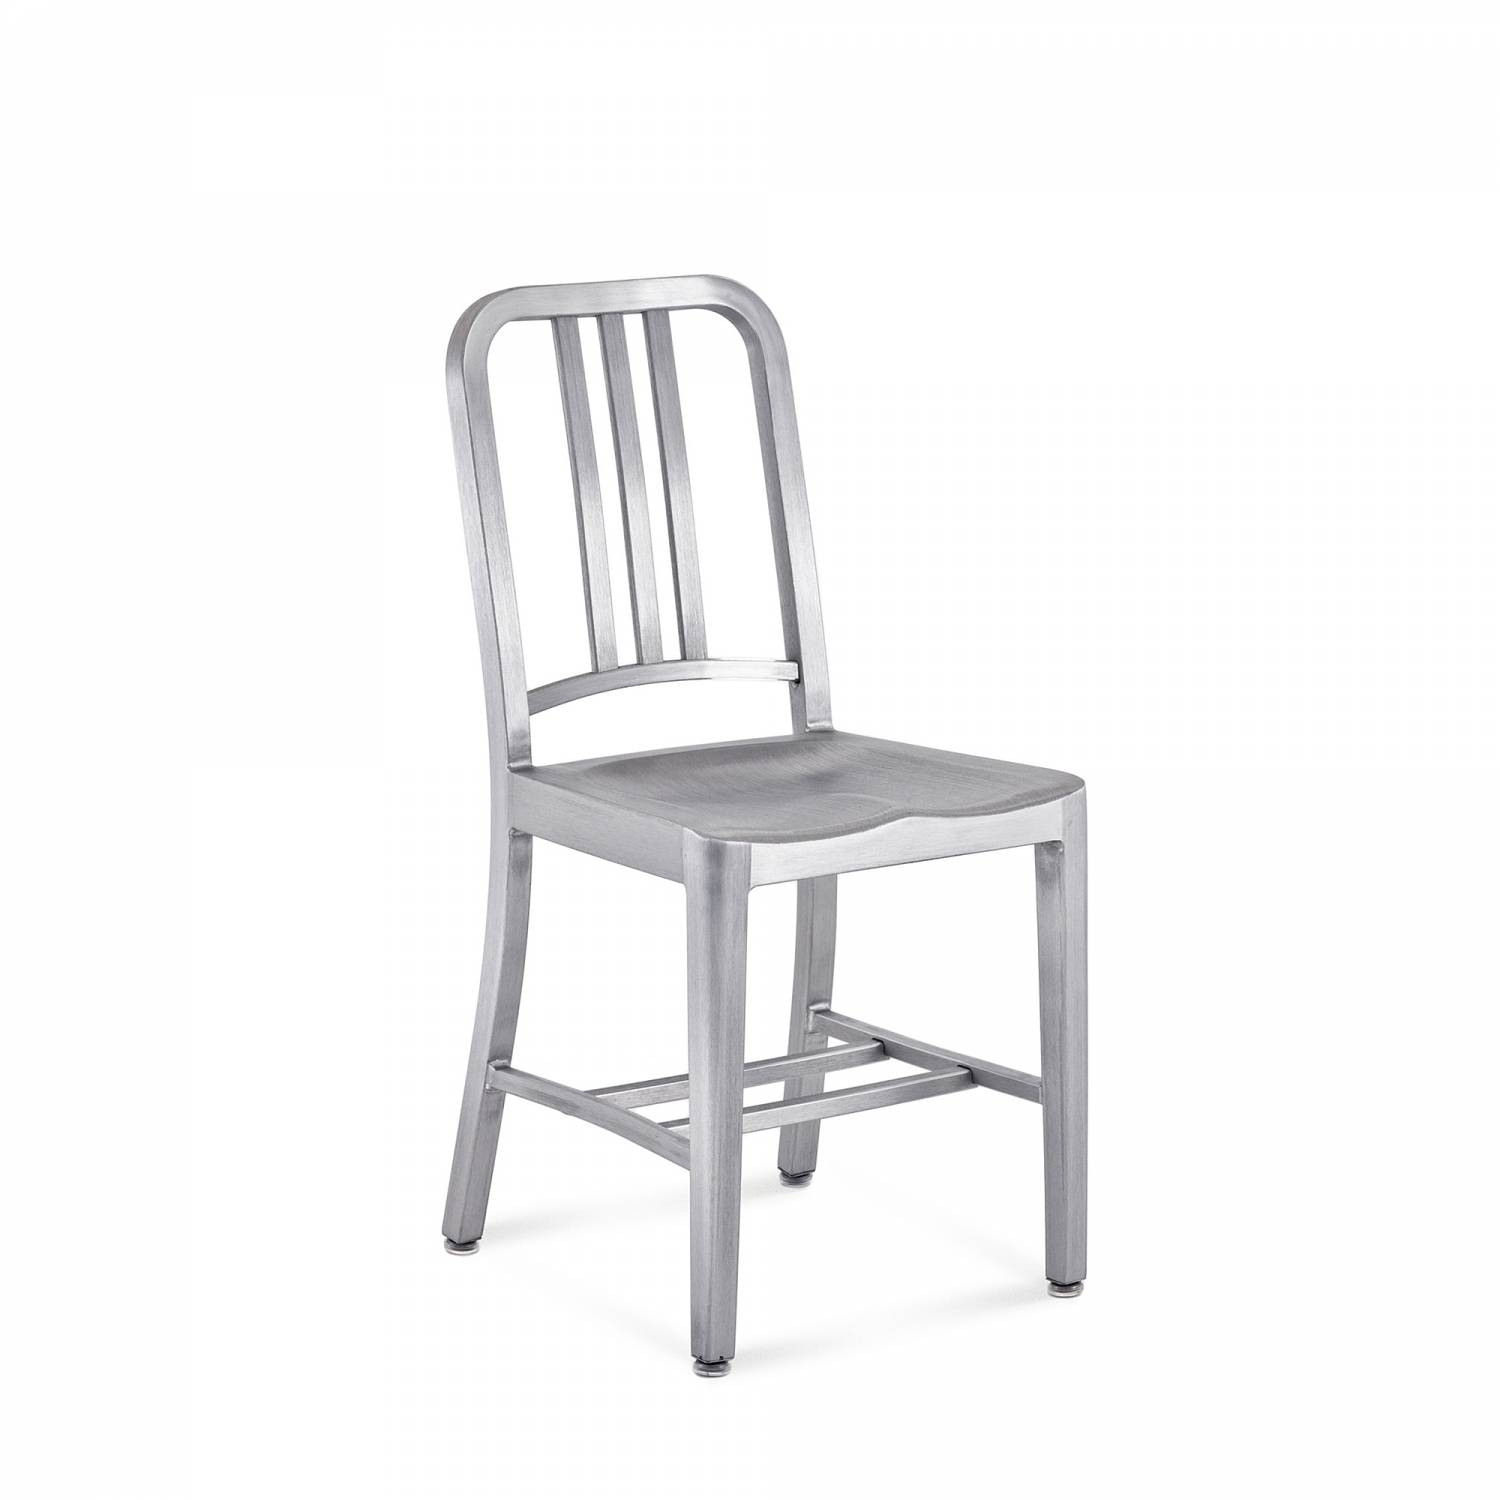 emeco 1006 navy chair recycled aluminium made to order by hand rh connectionsathome co uk